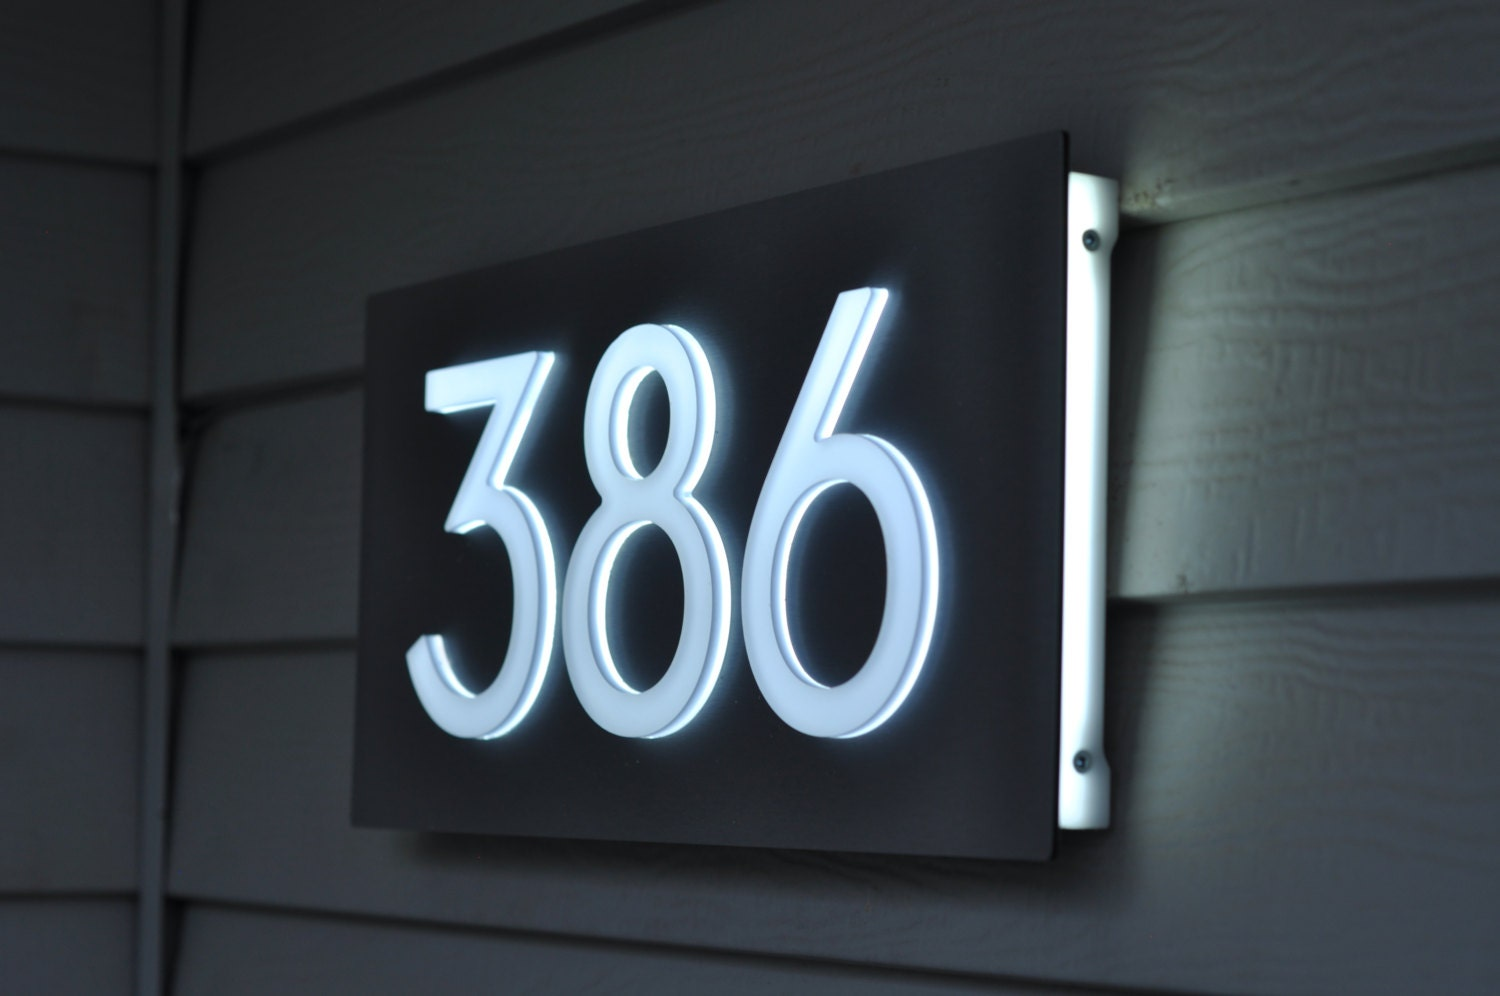 Custom aluminum acrylic led house numbers sign 5 tall Led house numbers